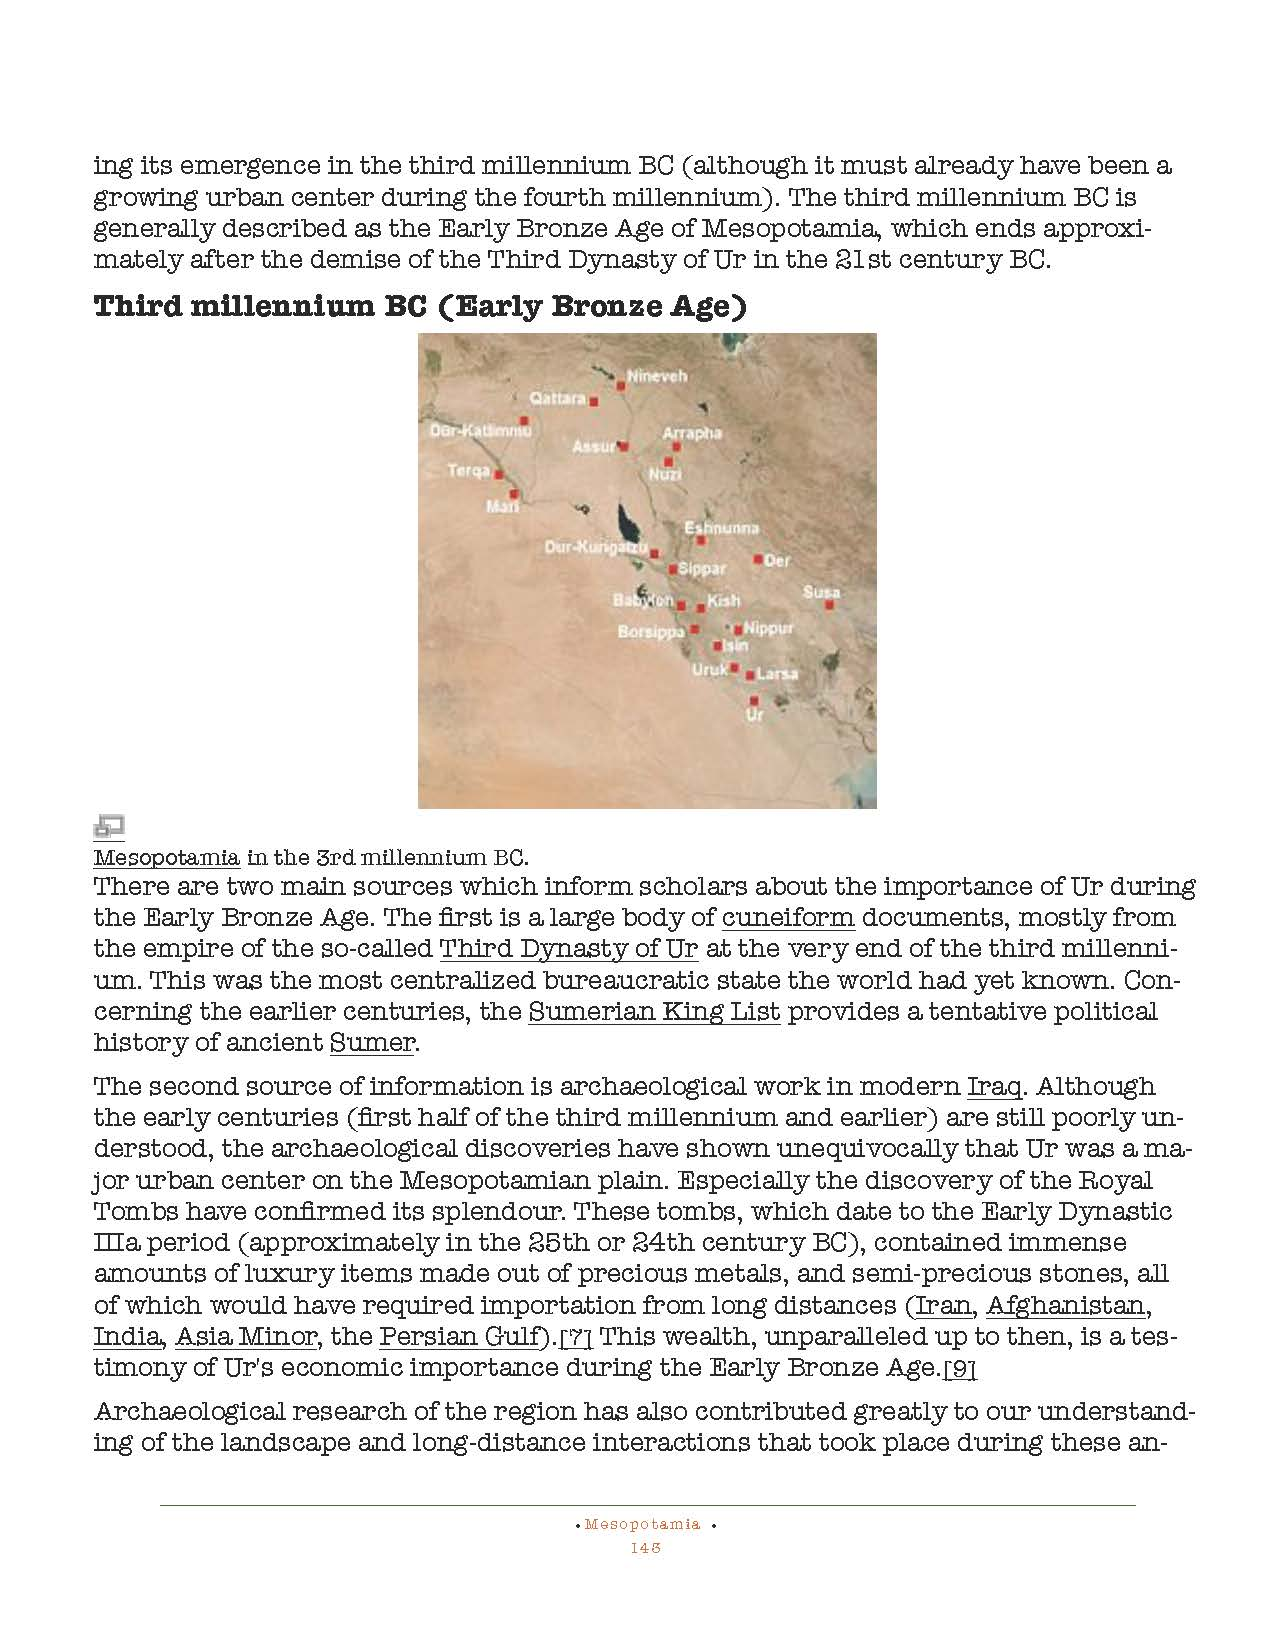 HOCE- Fertile Crescent Notes_Page_143.jpg